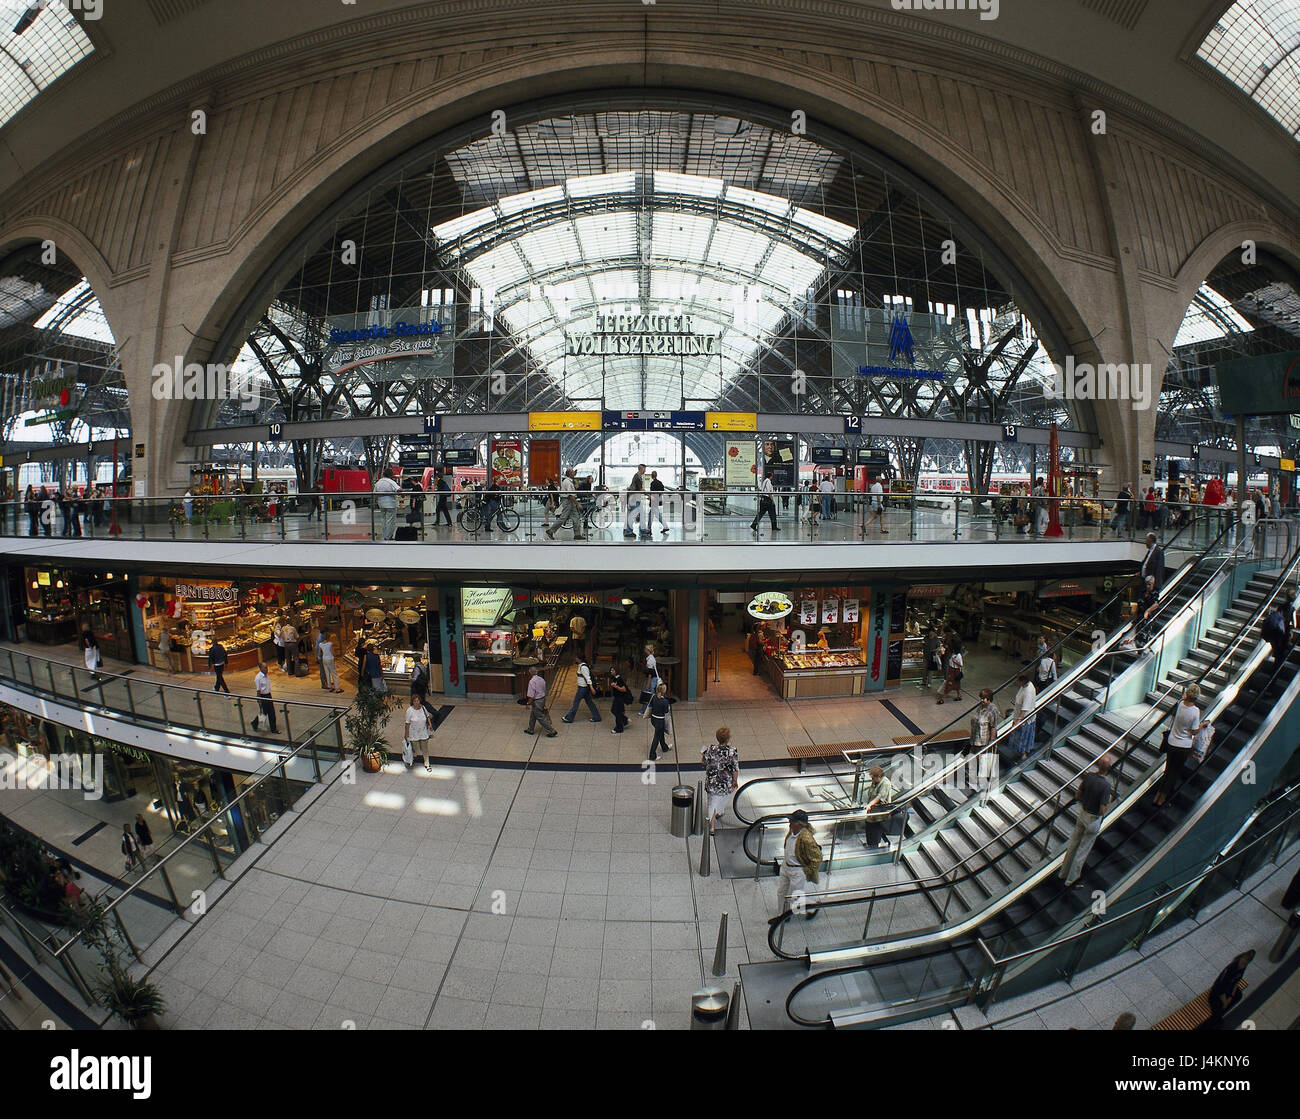 Germany, Saxony, Leipzig, central station, 'promenades', shopping arcade, escalators, passers-by town, centre, - Stock Image